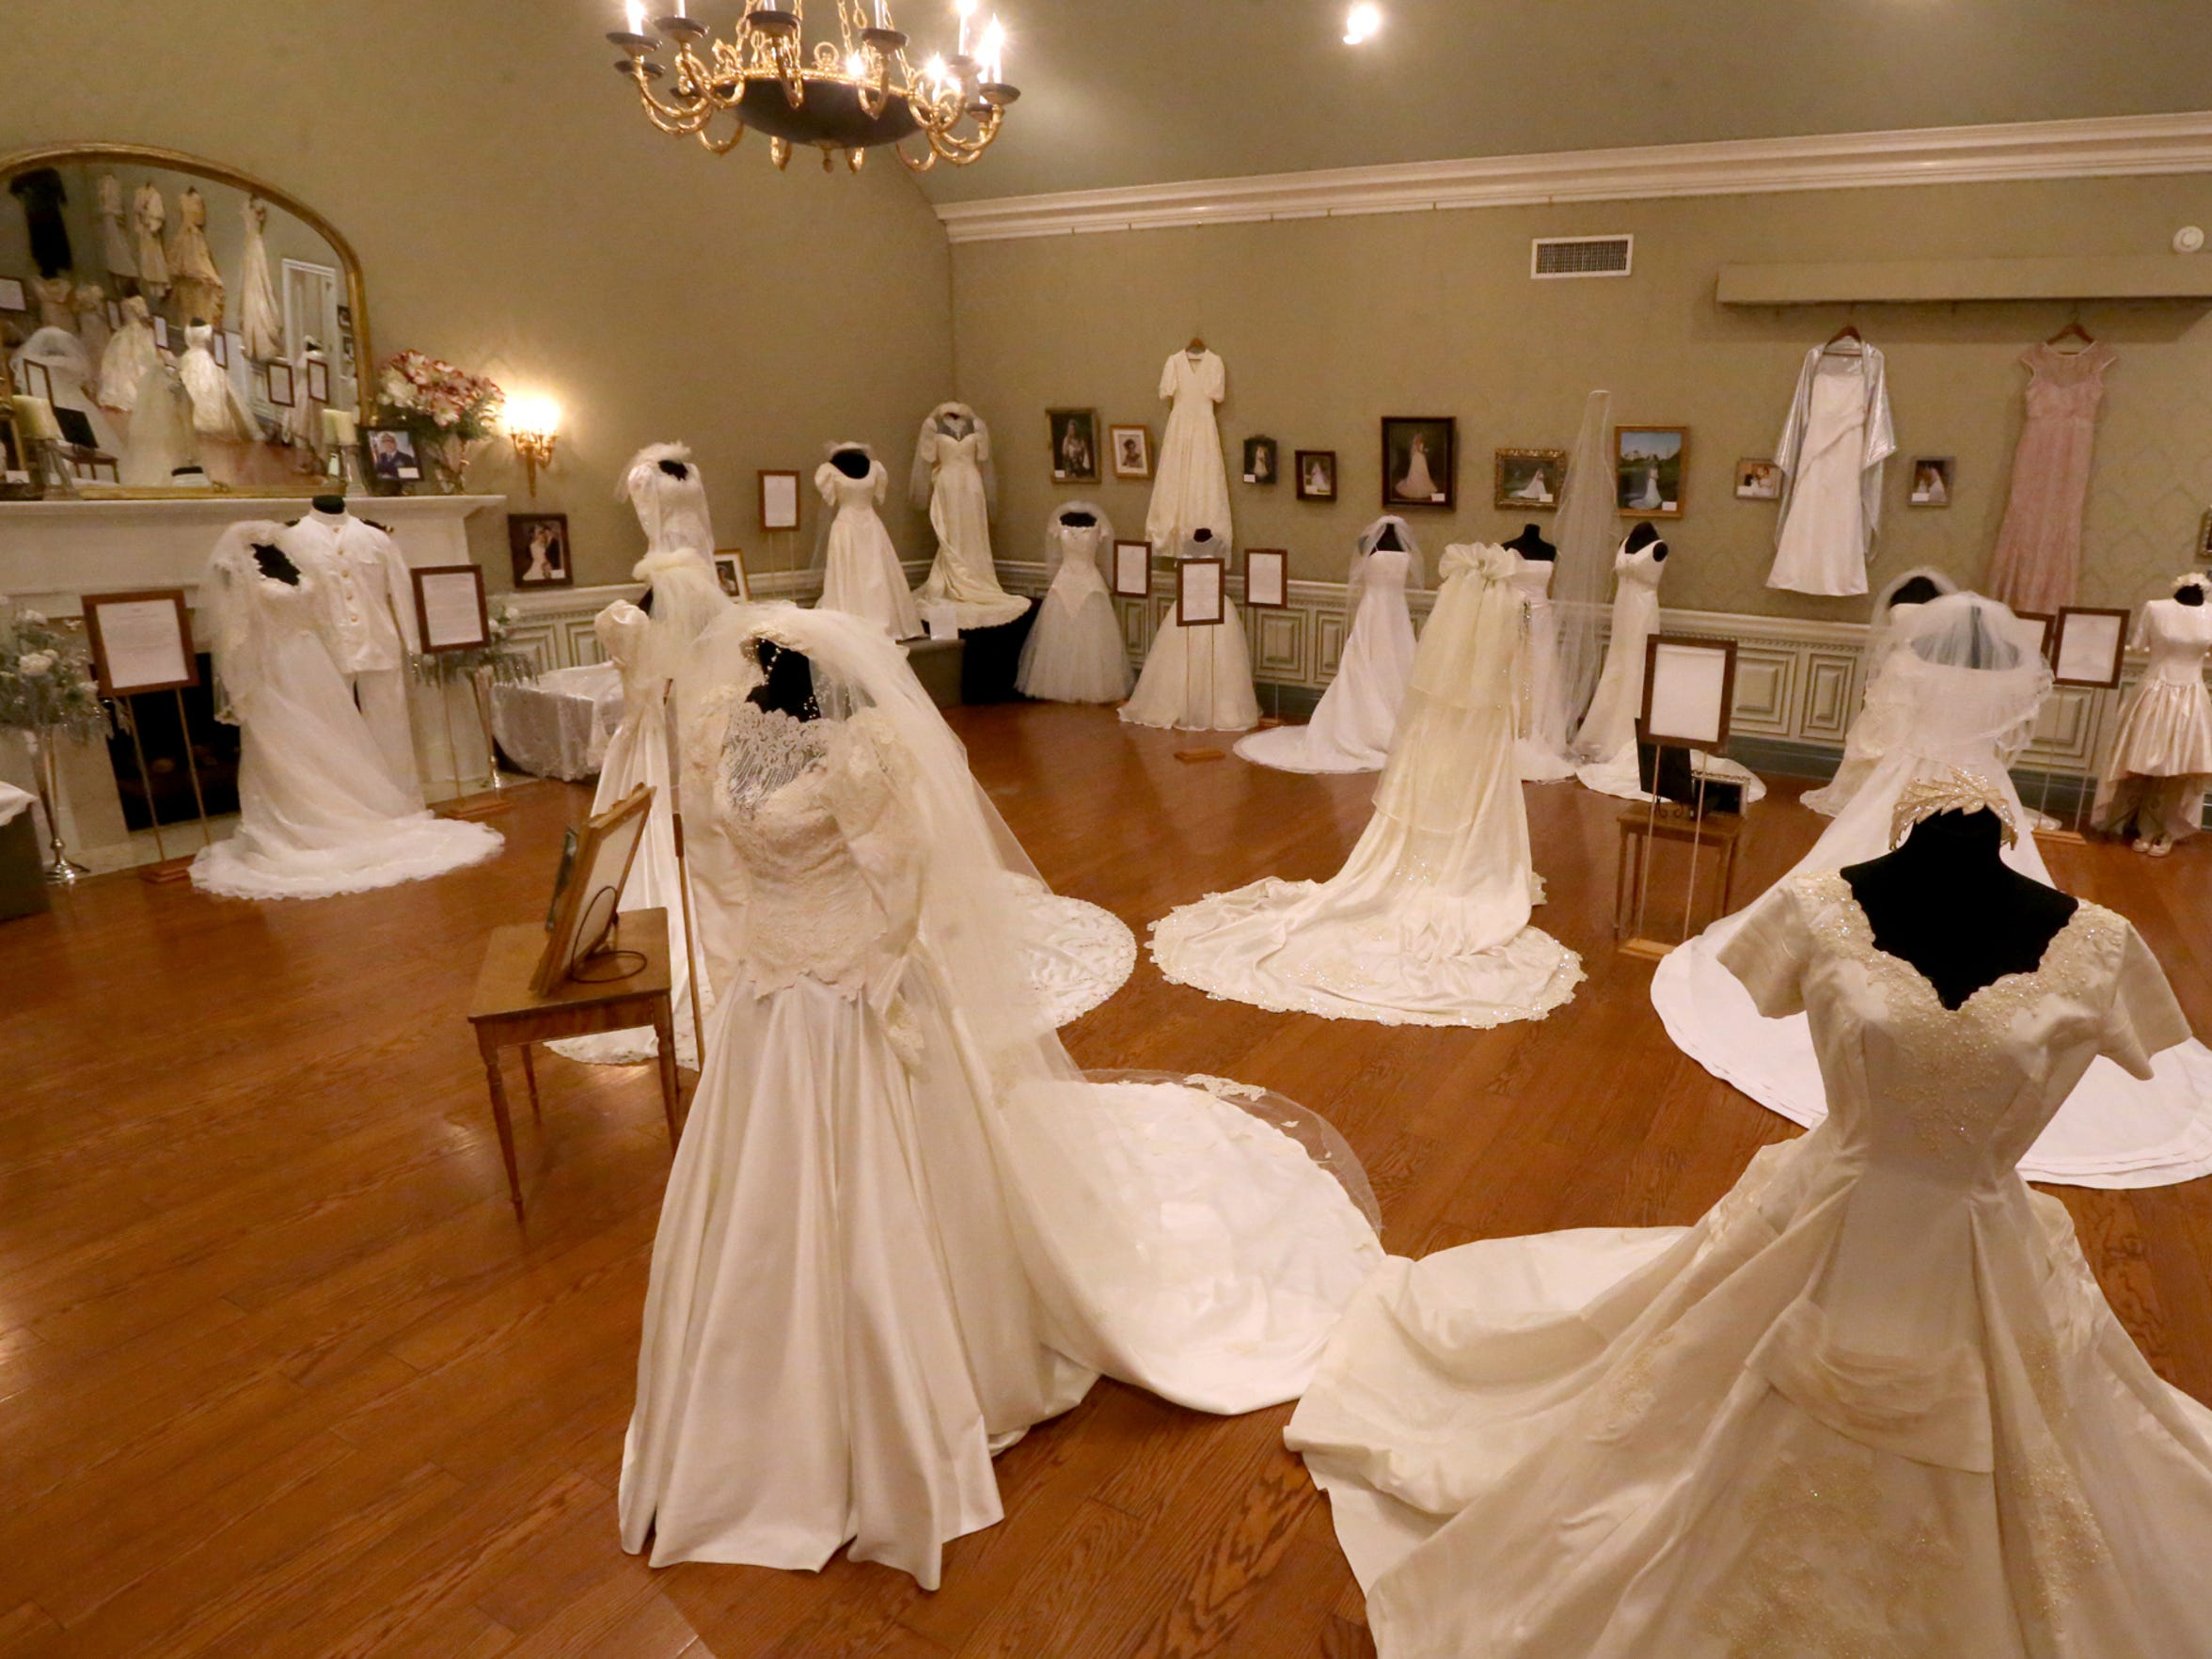 """JAN. 21-MARCH 3: Oaklands Mansion, 900 N. Maney Ave. in Murfreesboro, presents the annual """"Wedding Dresses Through the Decades"""" on exhibit Jan. 21 through March 5. Vintage gowns from the past 100 years will be on display, including Barbara Mandrell's 1967 gown which was handmade by her mother, and the white naval uniform worn by her husband, Ken Dudney. Admission: $10 and museum tours are available at regular rates during regular museum hours and combination tickets for the exhibition and house tours are available at a reduced rate. For more information, contact Mary Beth Nevills at Oaklands 615-893-0022 or email mb@oaklandsmuseum.org."""